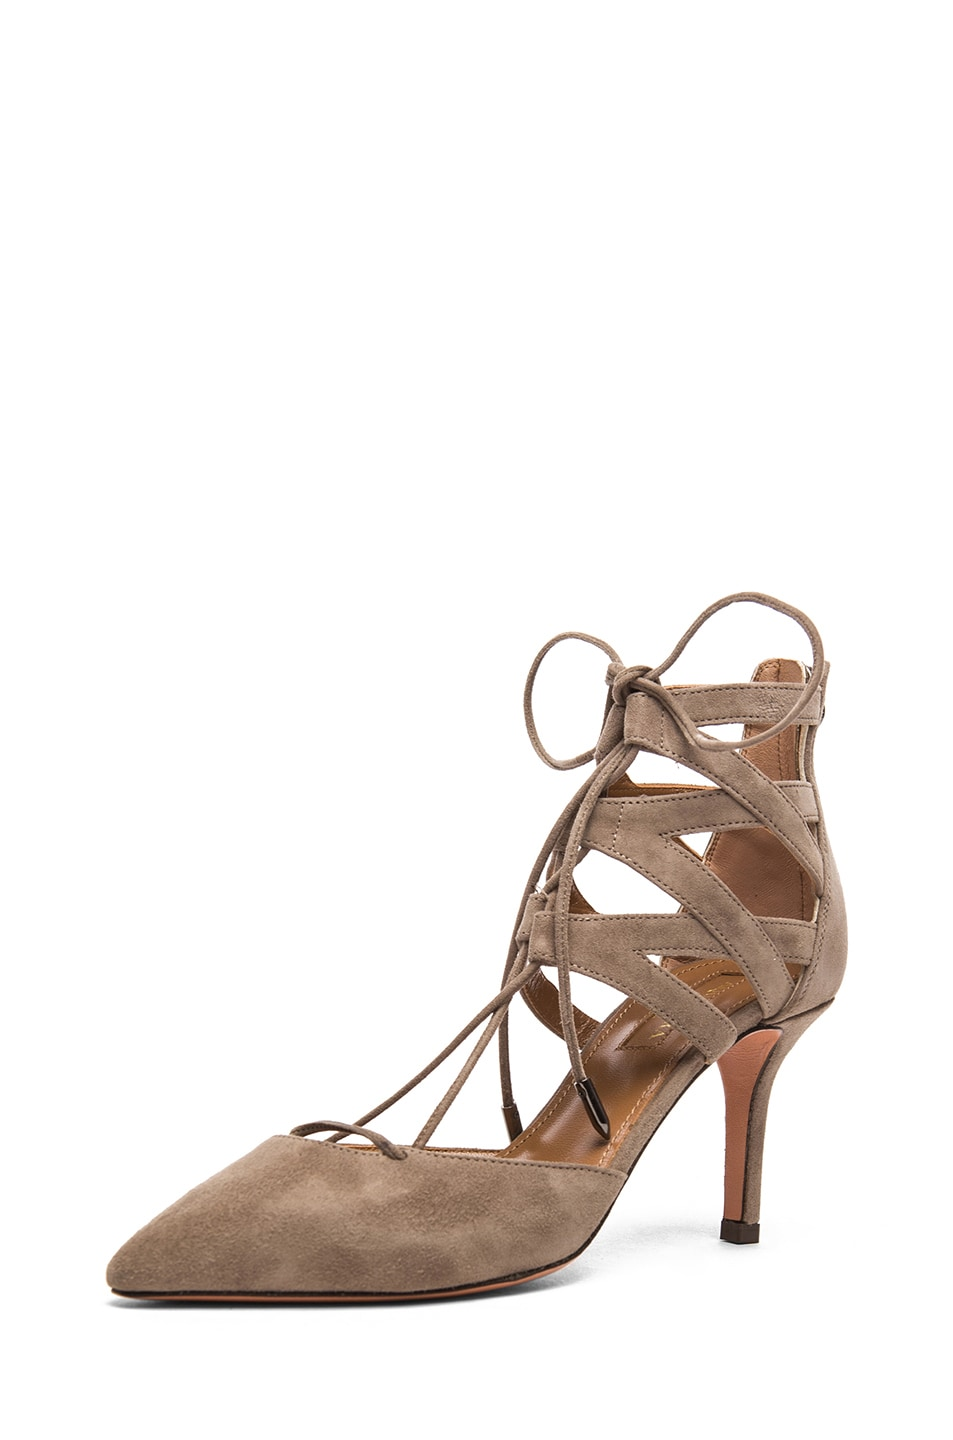 Image 2 of Aquazzura Belgravia Suede Lace Up Pumps in Taupe